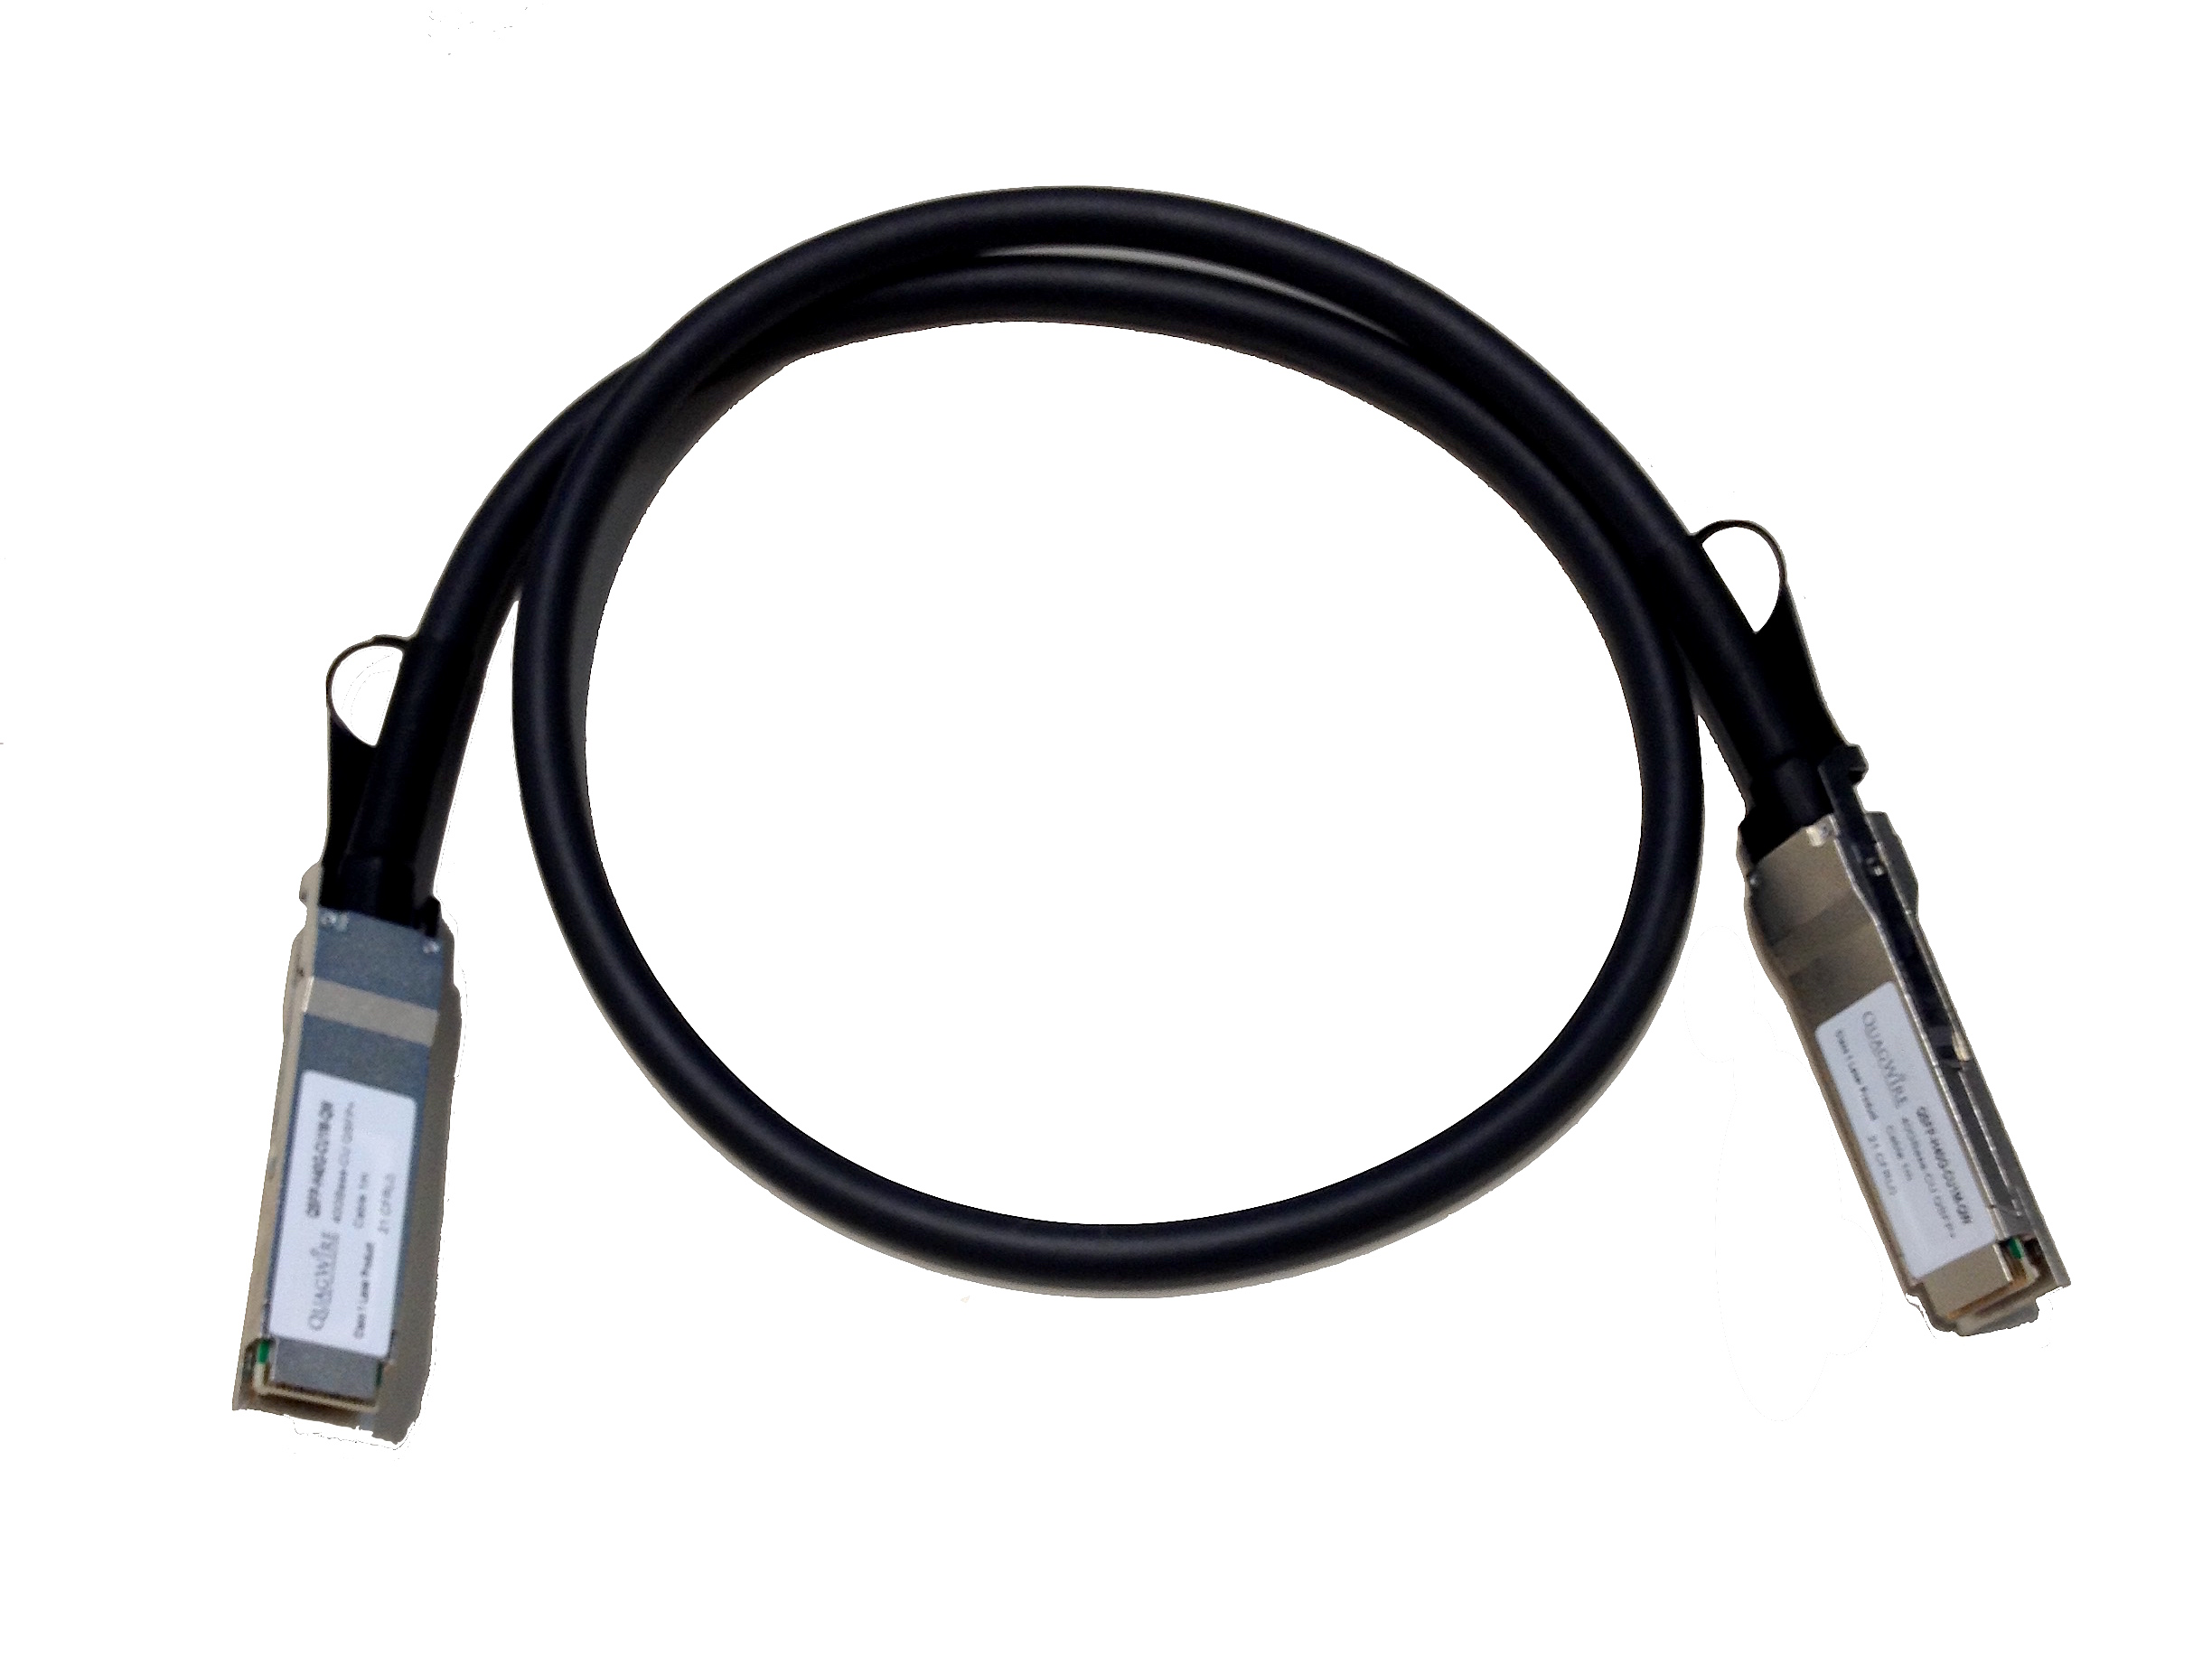 AOC-Q-Q-40G-SR4-7M Arista Compatible Active Optical Cable